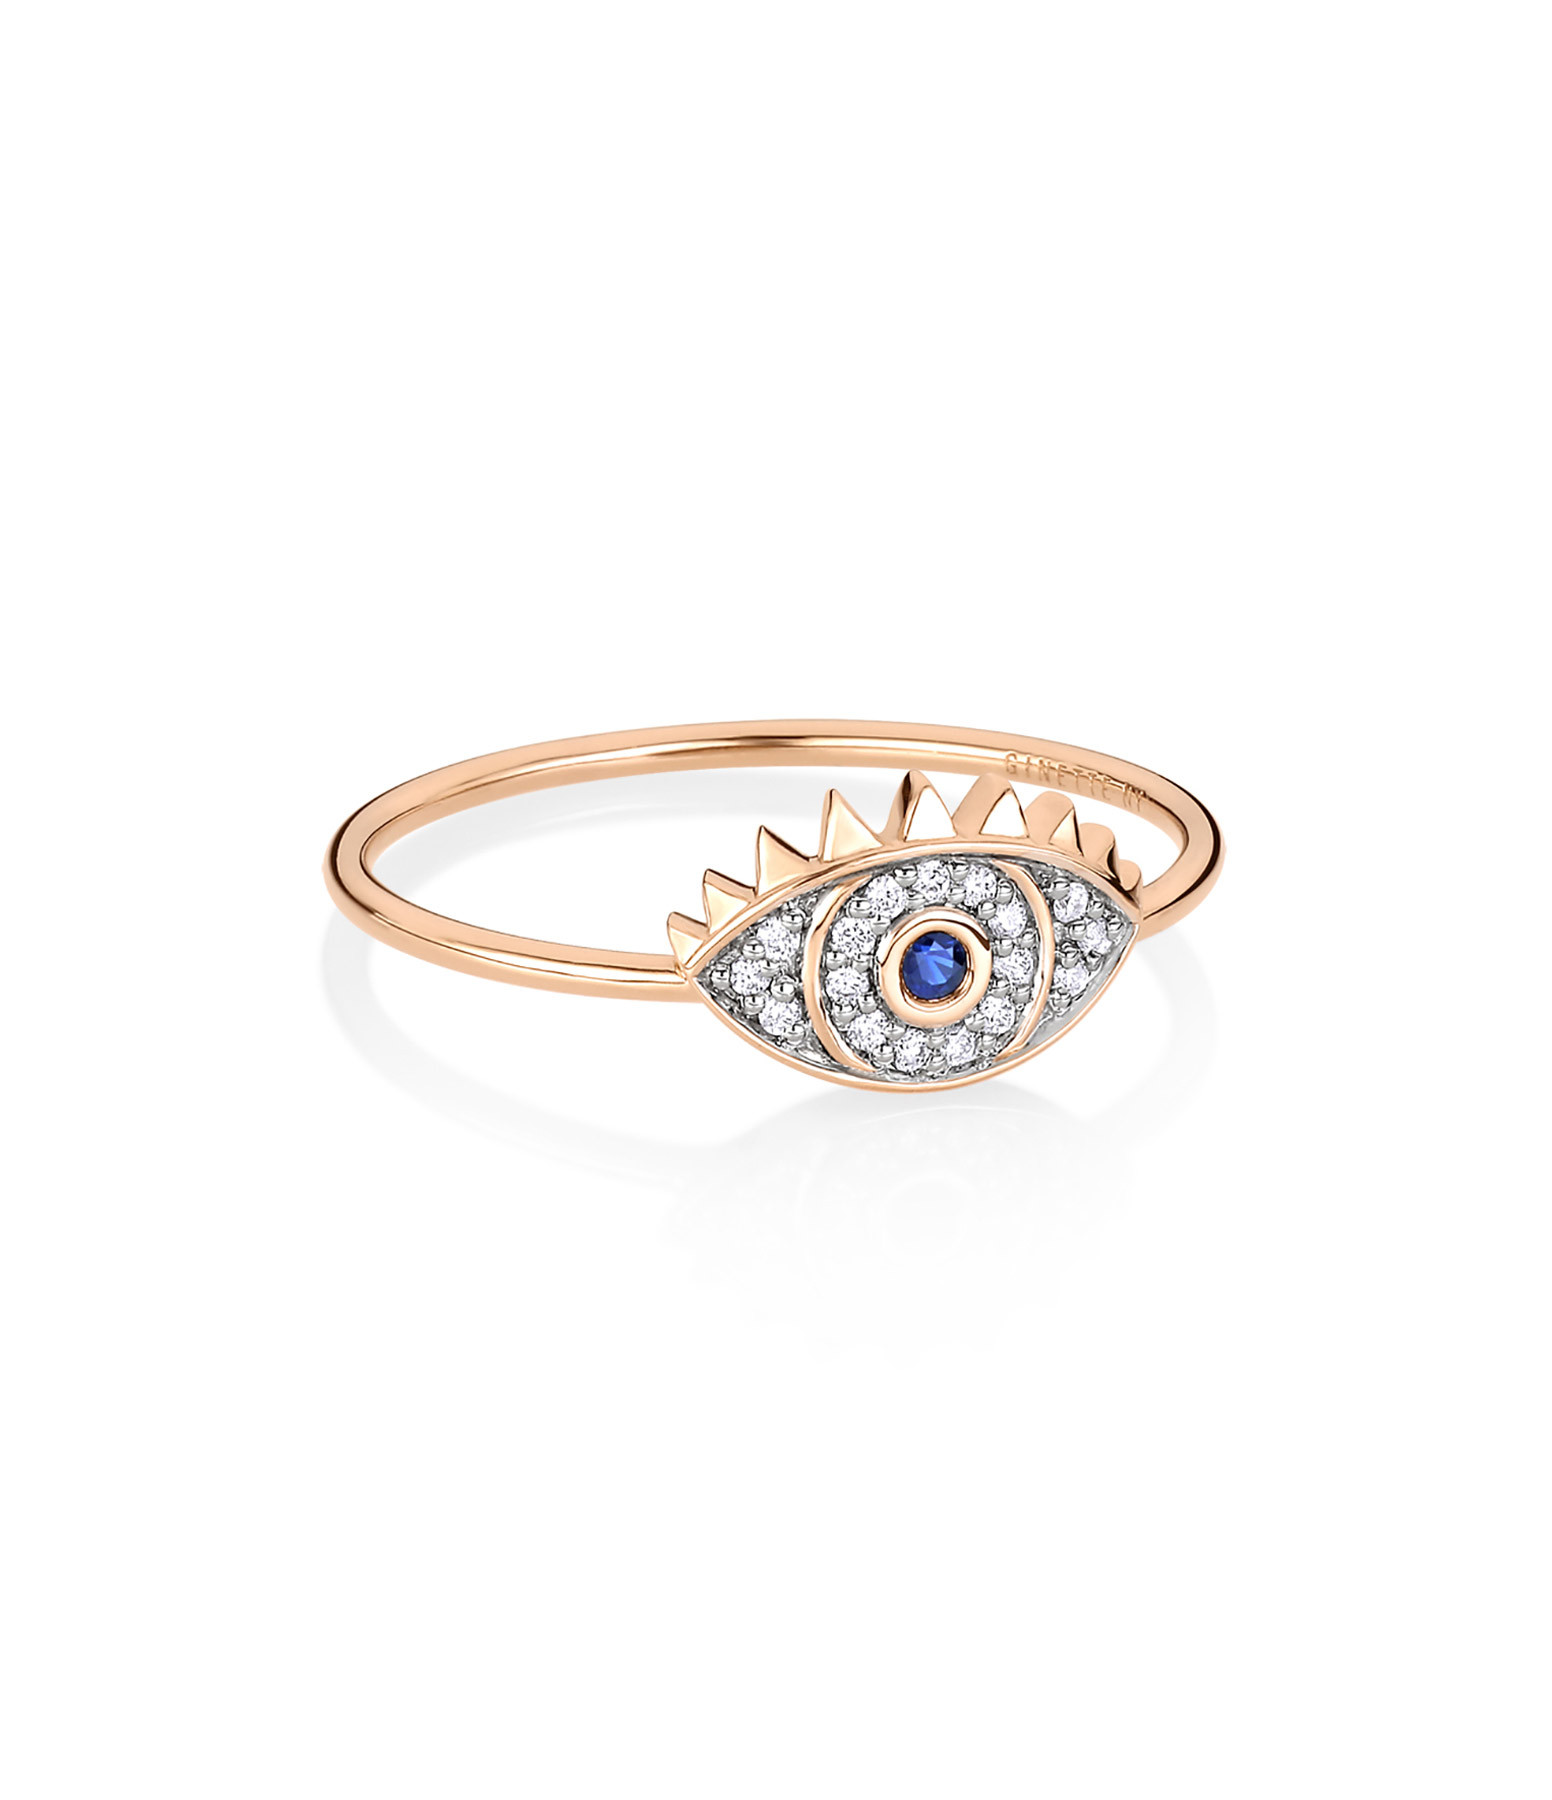 GINETTE NY - Bague Ajna Saphir Diamants Or Rose